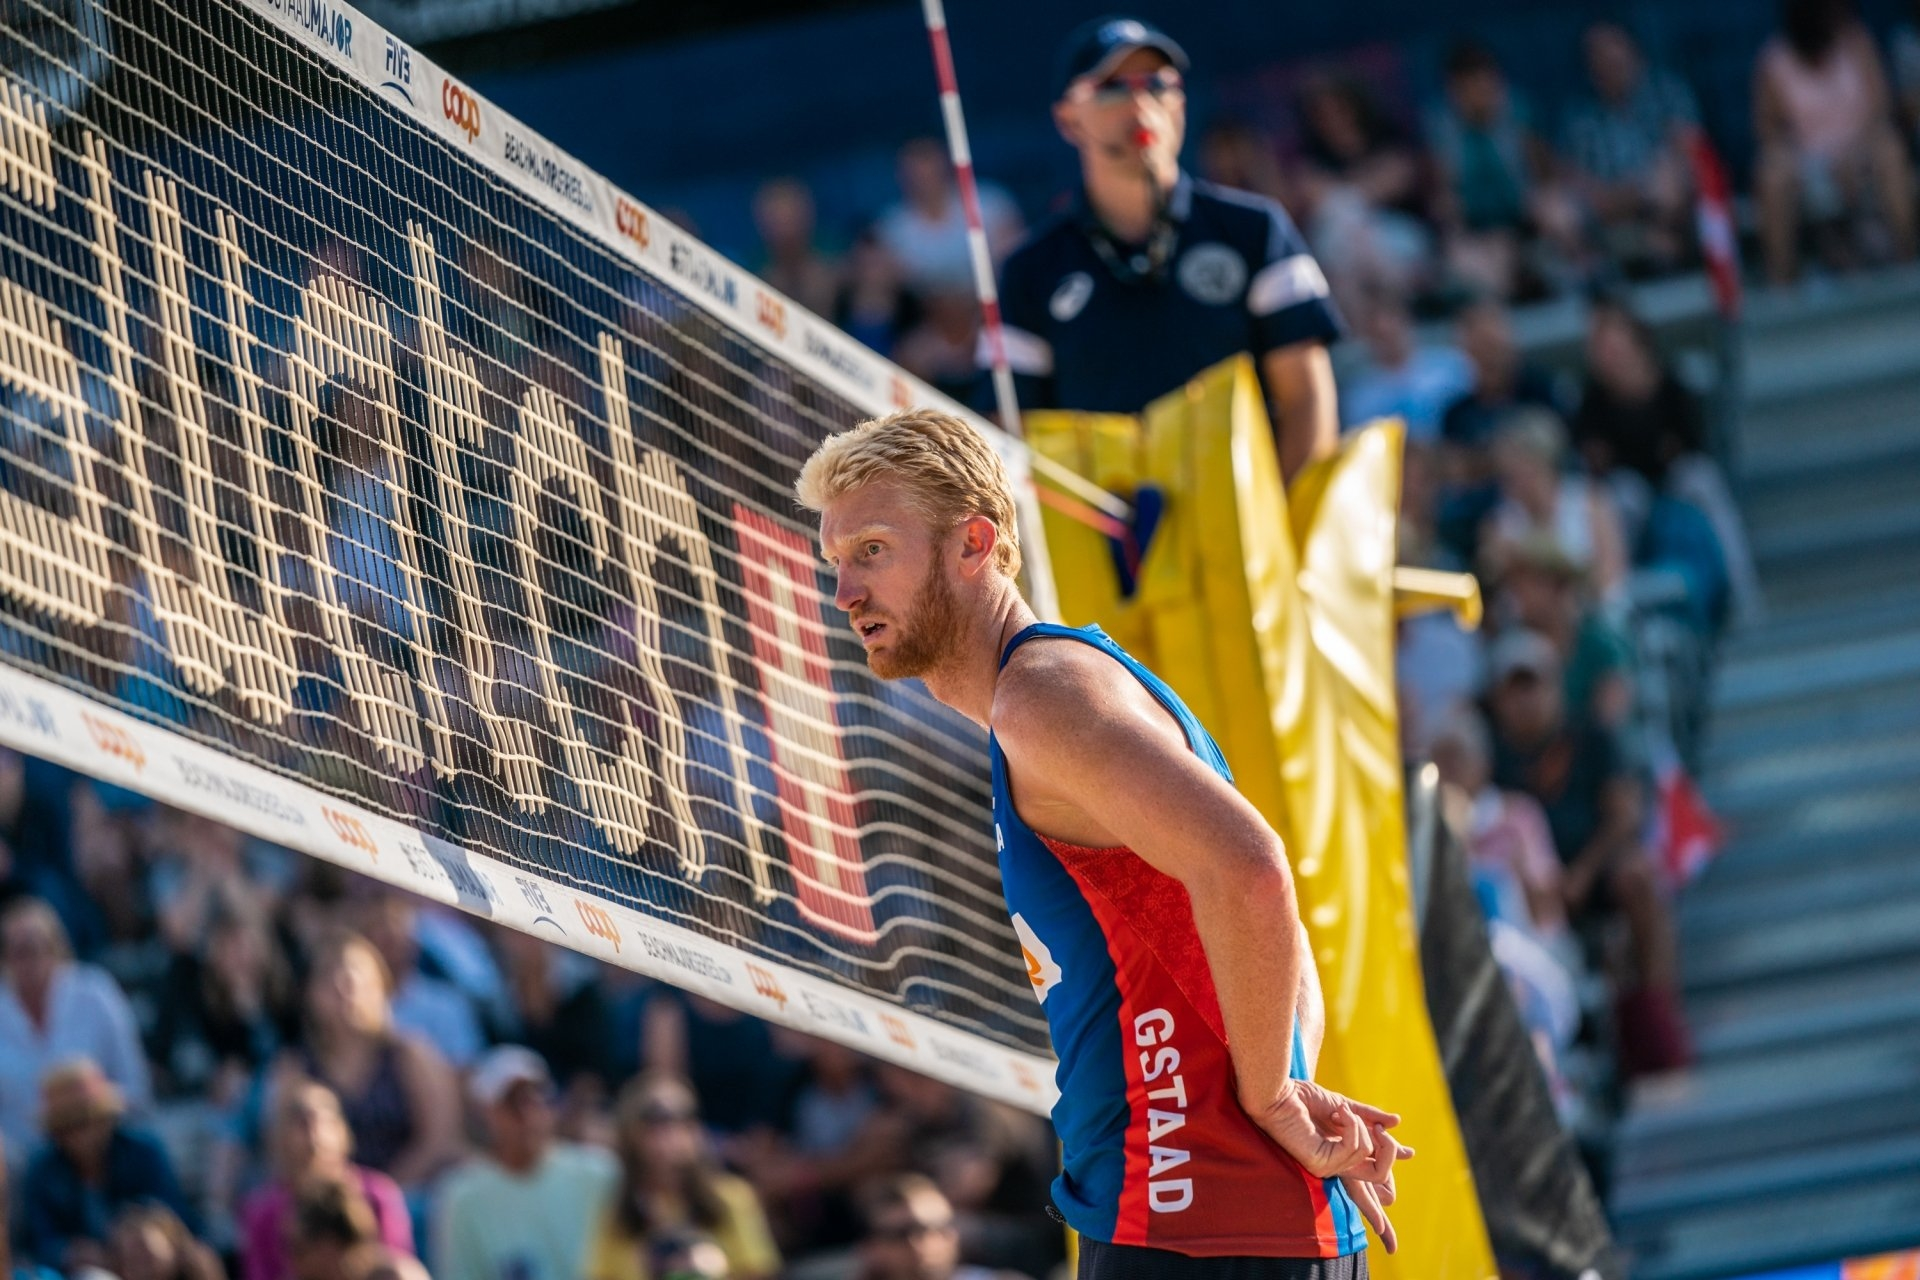 Budinger had a single appearance in the Beach Major Series in 2018, finishing 17th in Gstaad